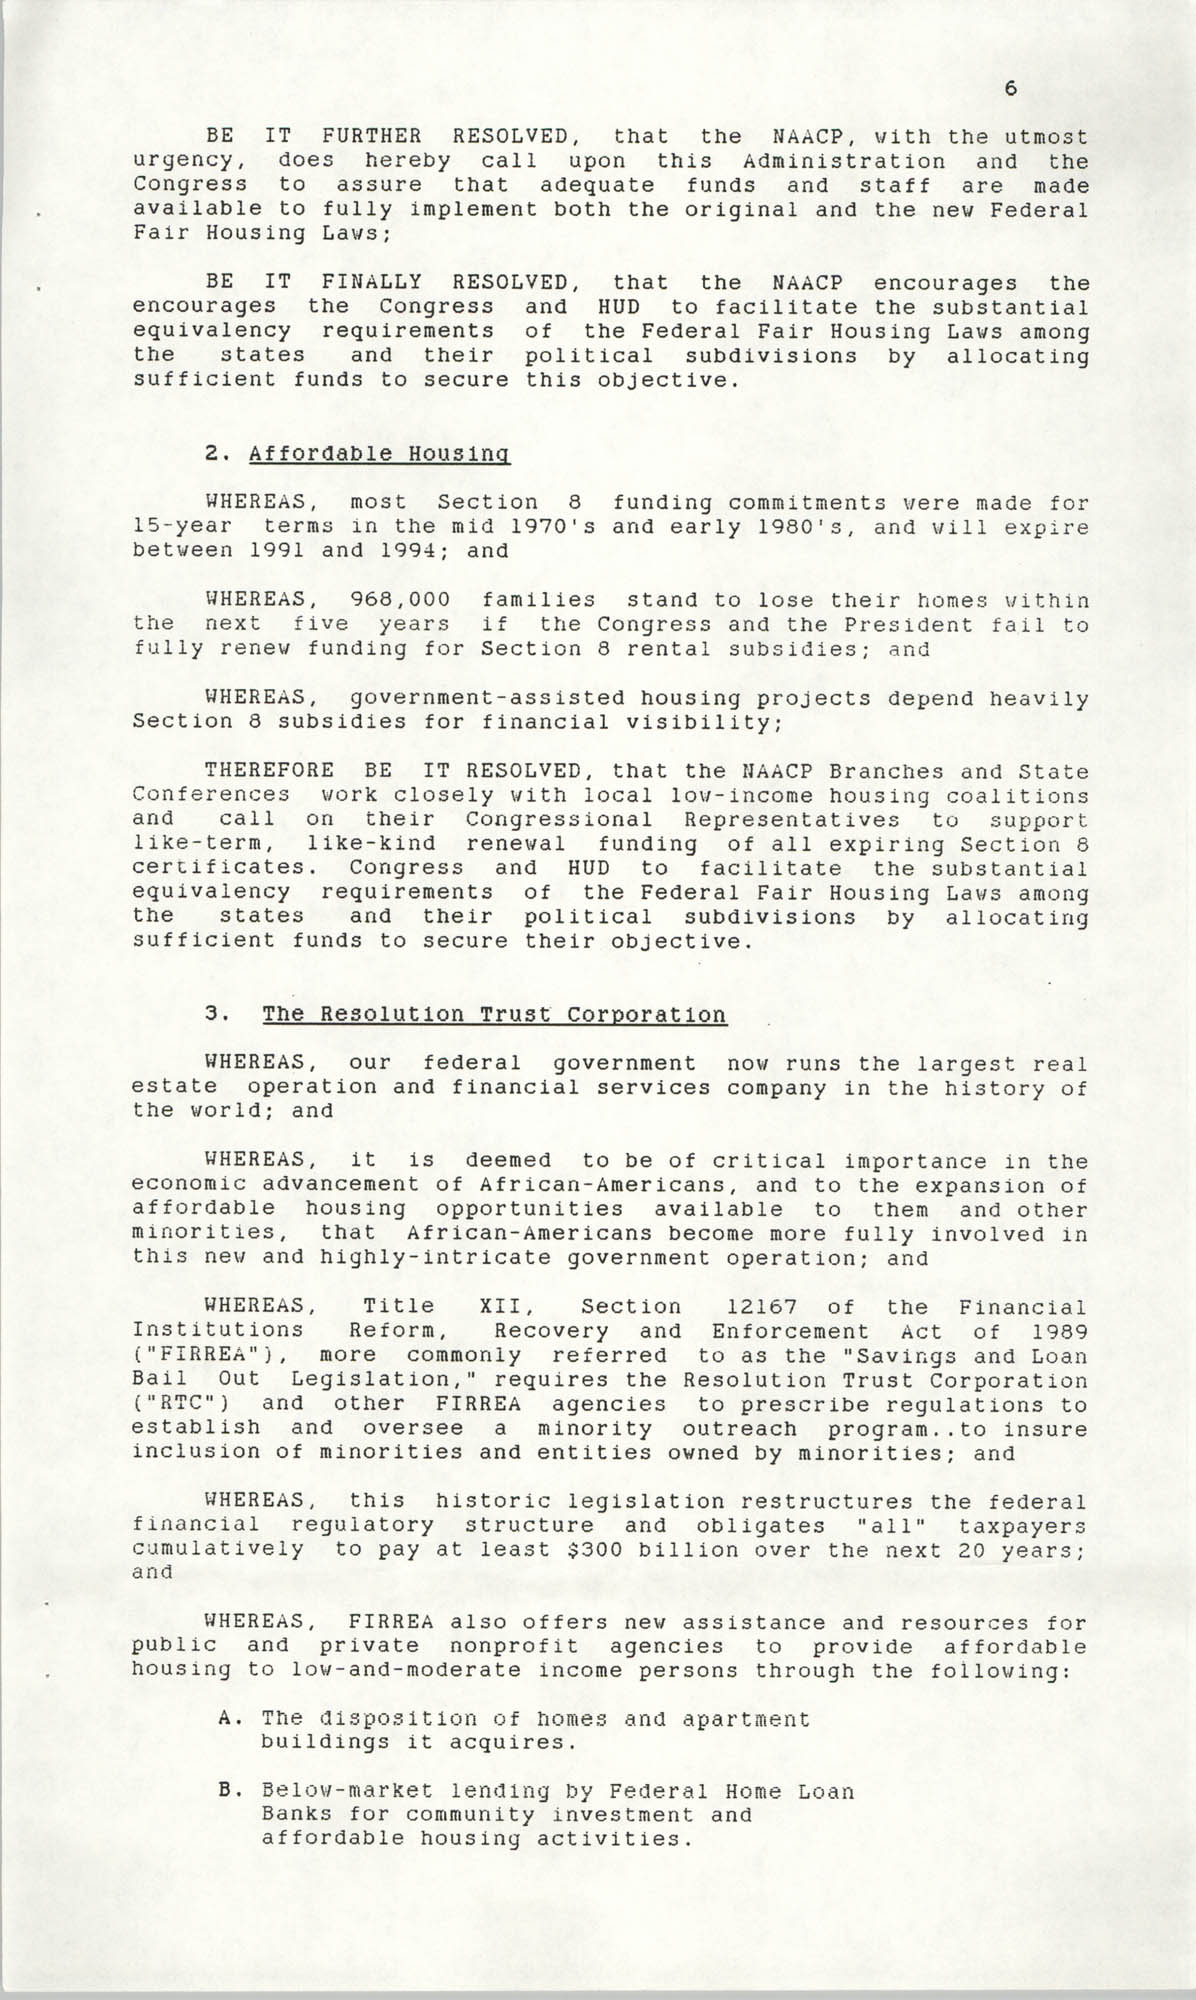 Resolutions Submitted Under Article X, Section 2 of the Constitution of the NAACP, 1990, Page 6